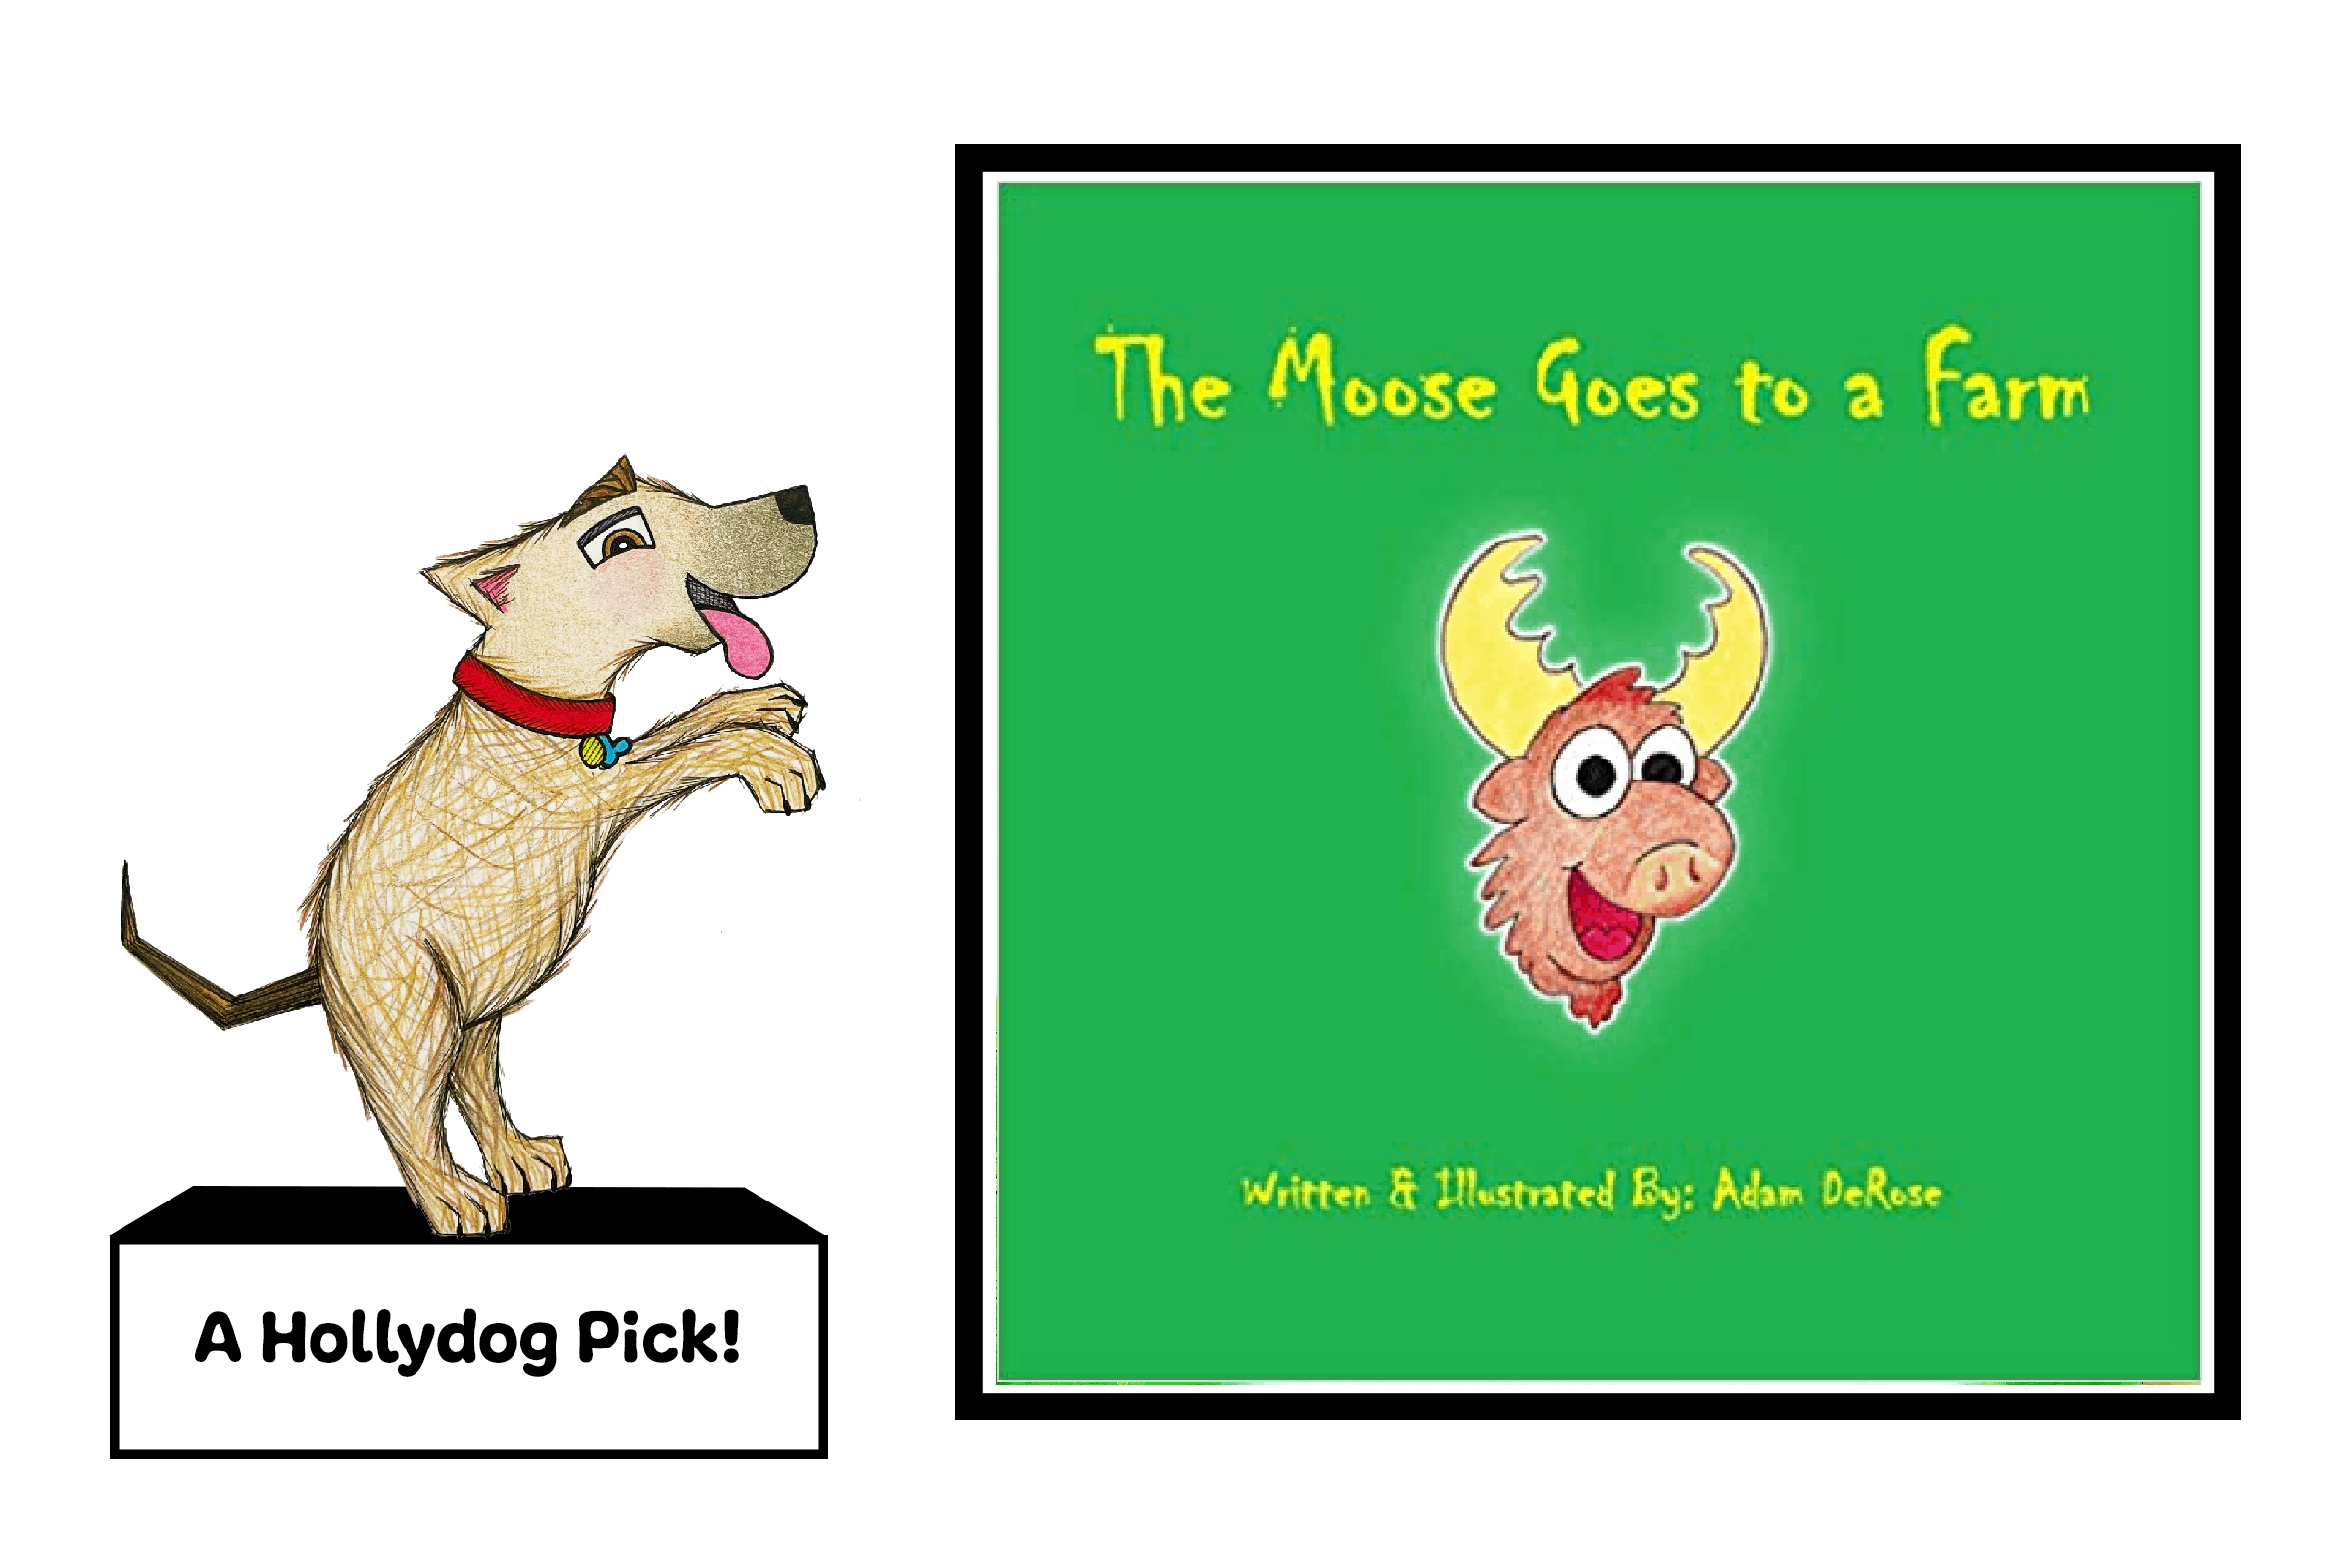 The Moose Goes to a Farm Picture Book